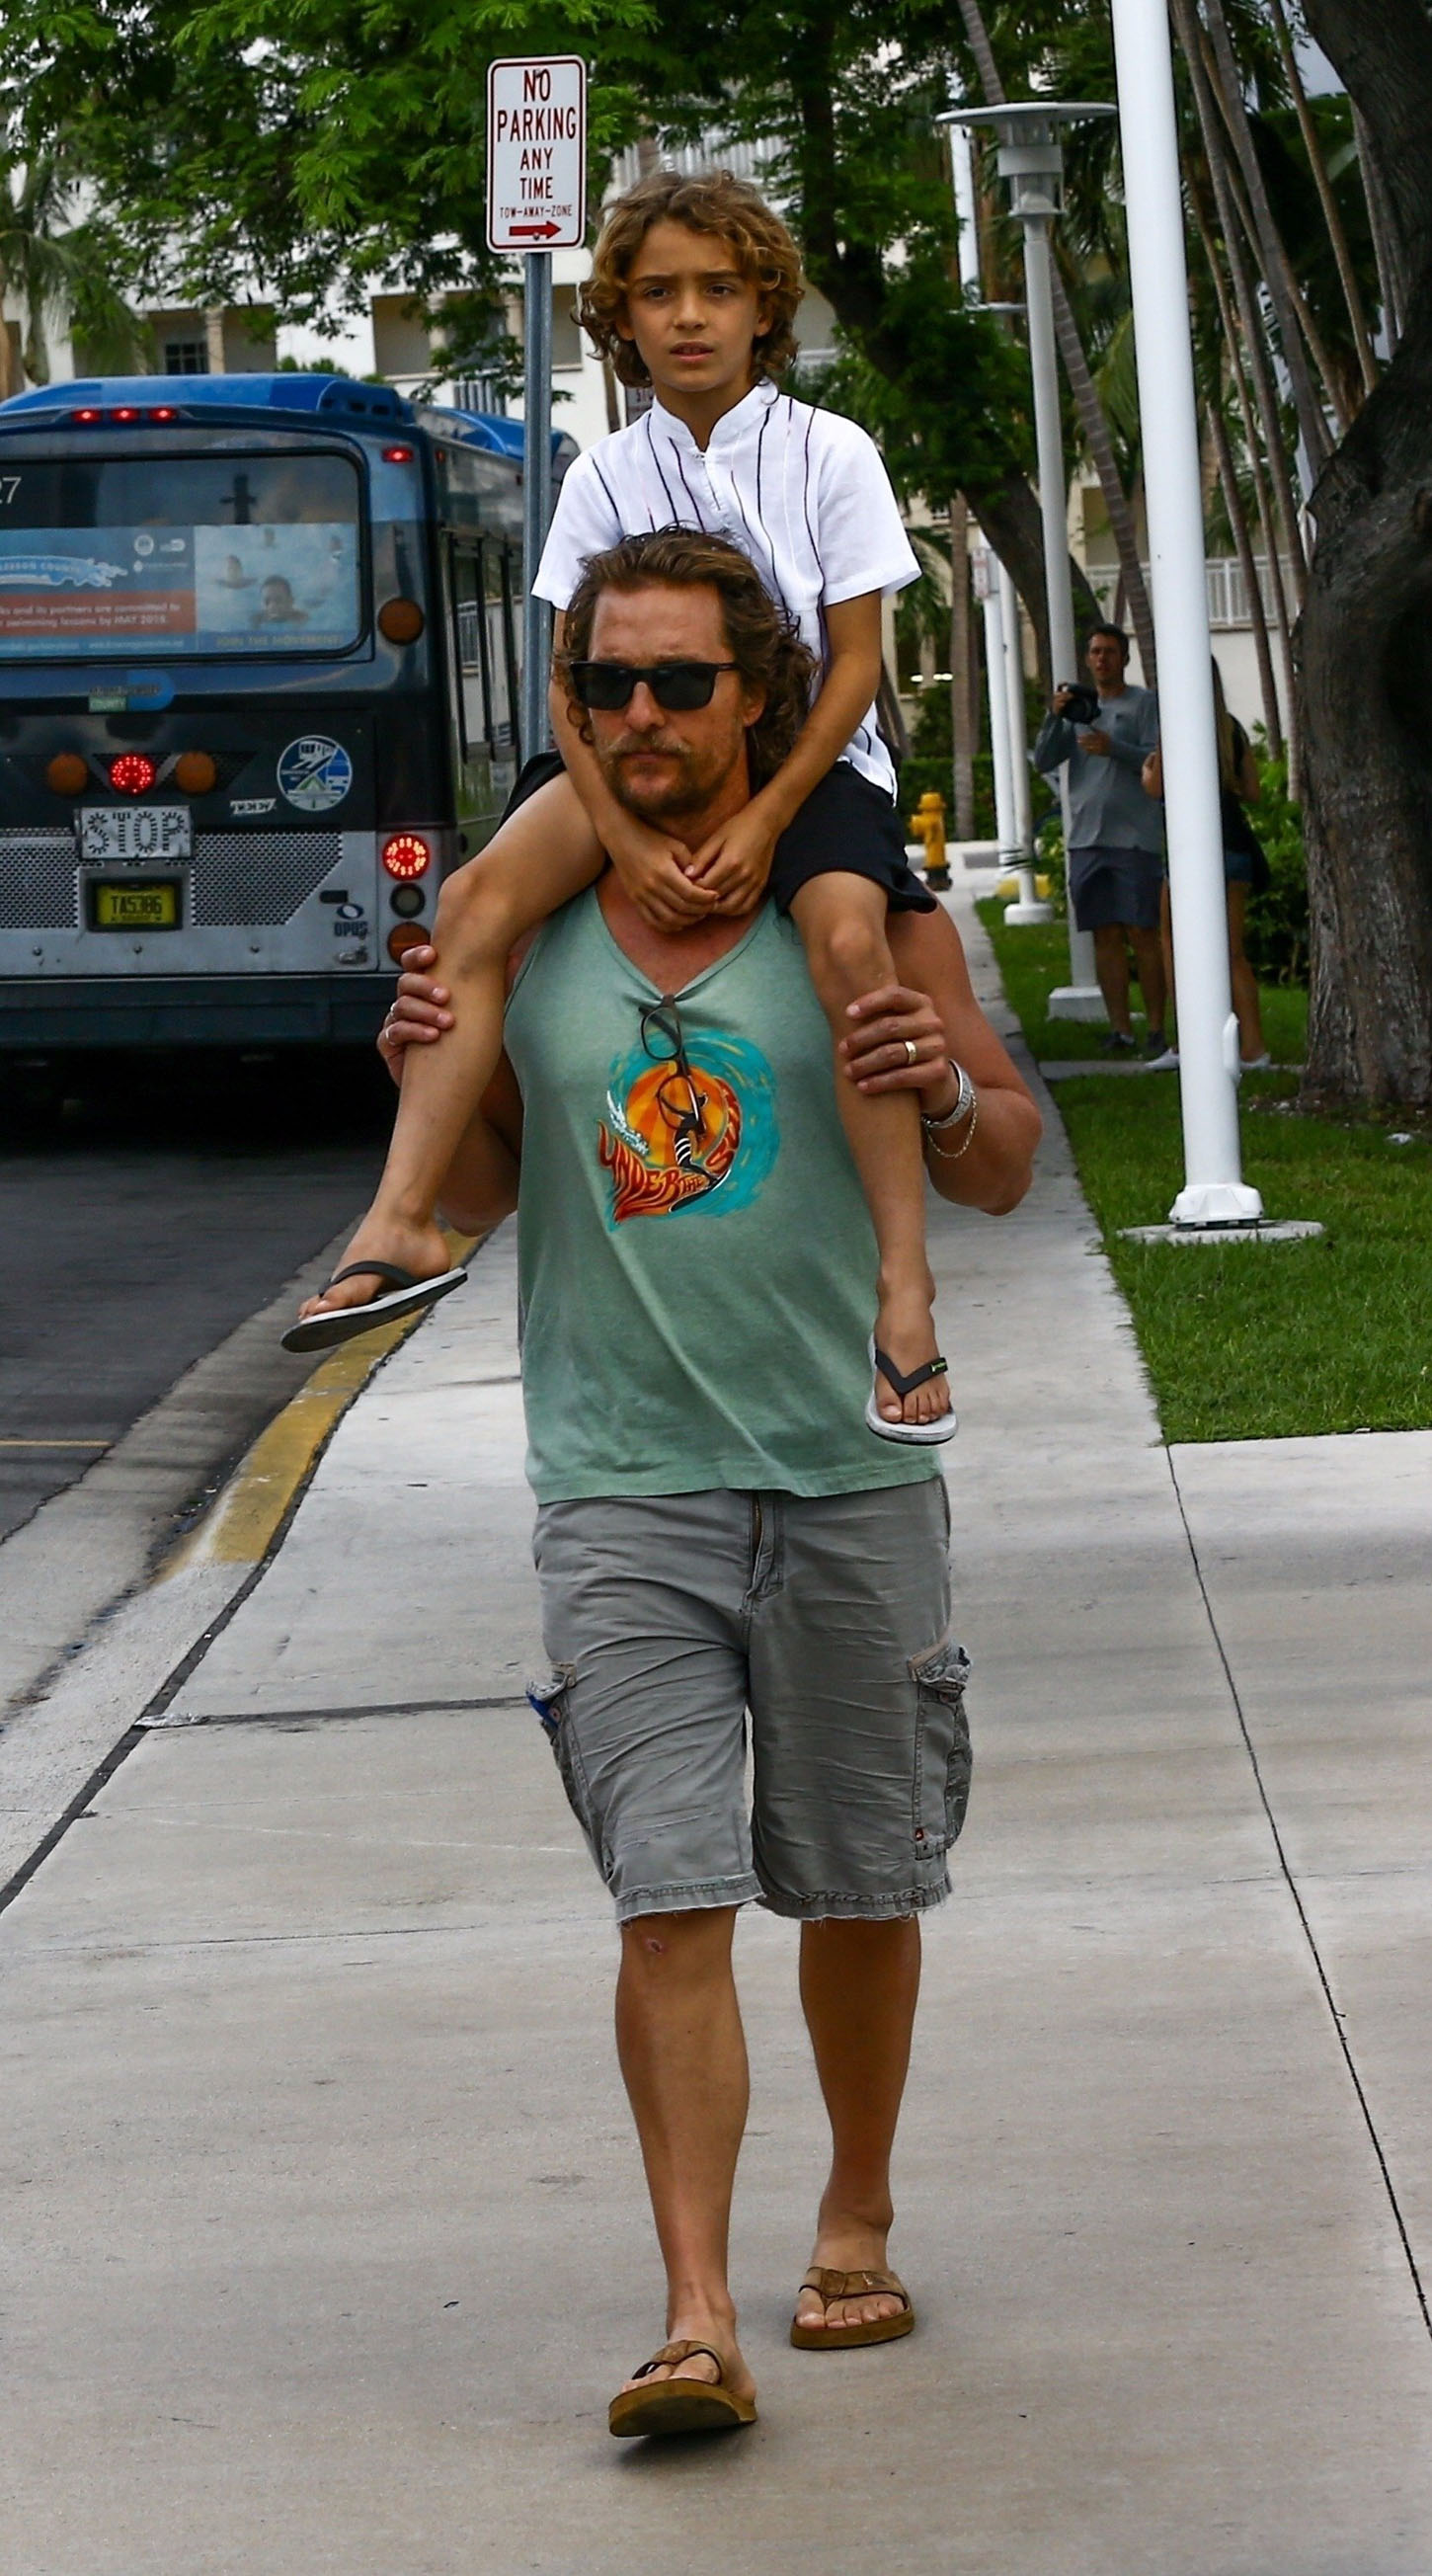 Miami Beach, FL  - Matthew McConaughey enjoys a Friday evening out with his family after lunch including his wife Camila Alves and their kids Levi, Vida, and Linvingston. The family look casual as they walk down the street.  Pictured: Matthew McConaughey, Camila Alves, Levi Alves McConaughey, Vida Alves McConaughey, Livingston Alves     *UK Clients - Pictures Containing Children Please Pixelate Face Prior To Publication*, Image: 354060317, License: Rights-managed, Restrictions: , Model Release: no, Credit line: Profimedia, AKM-GSI